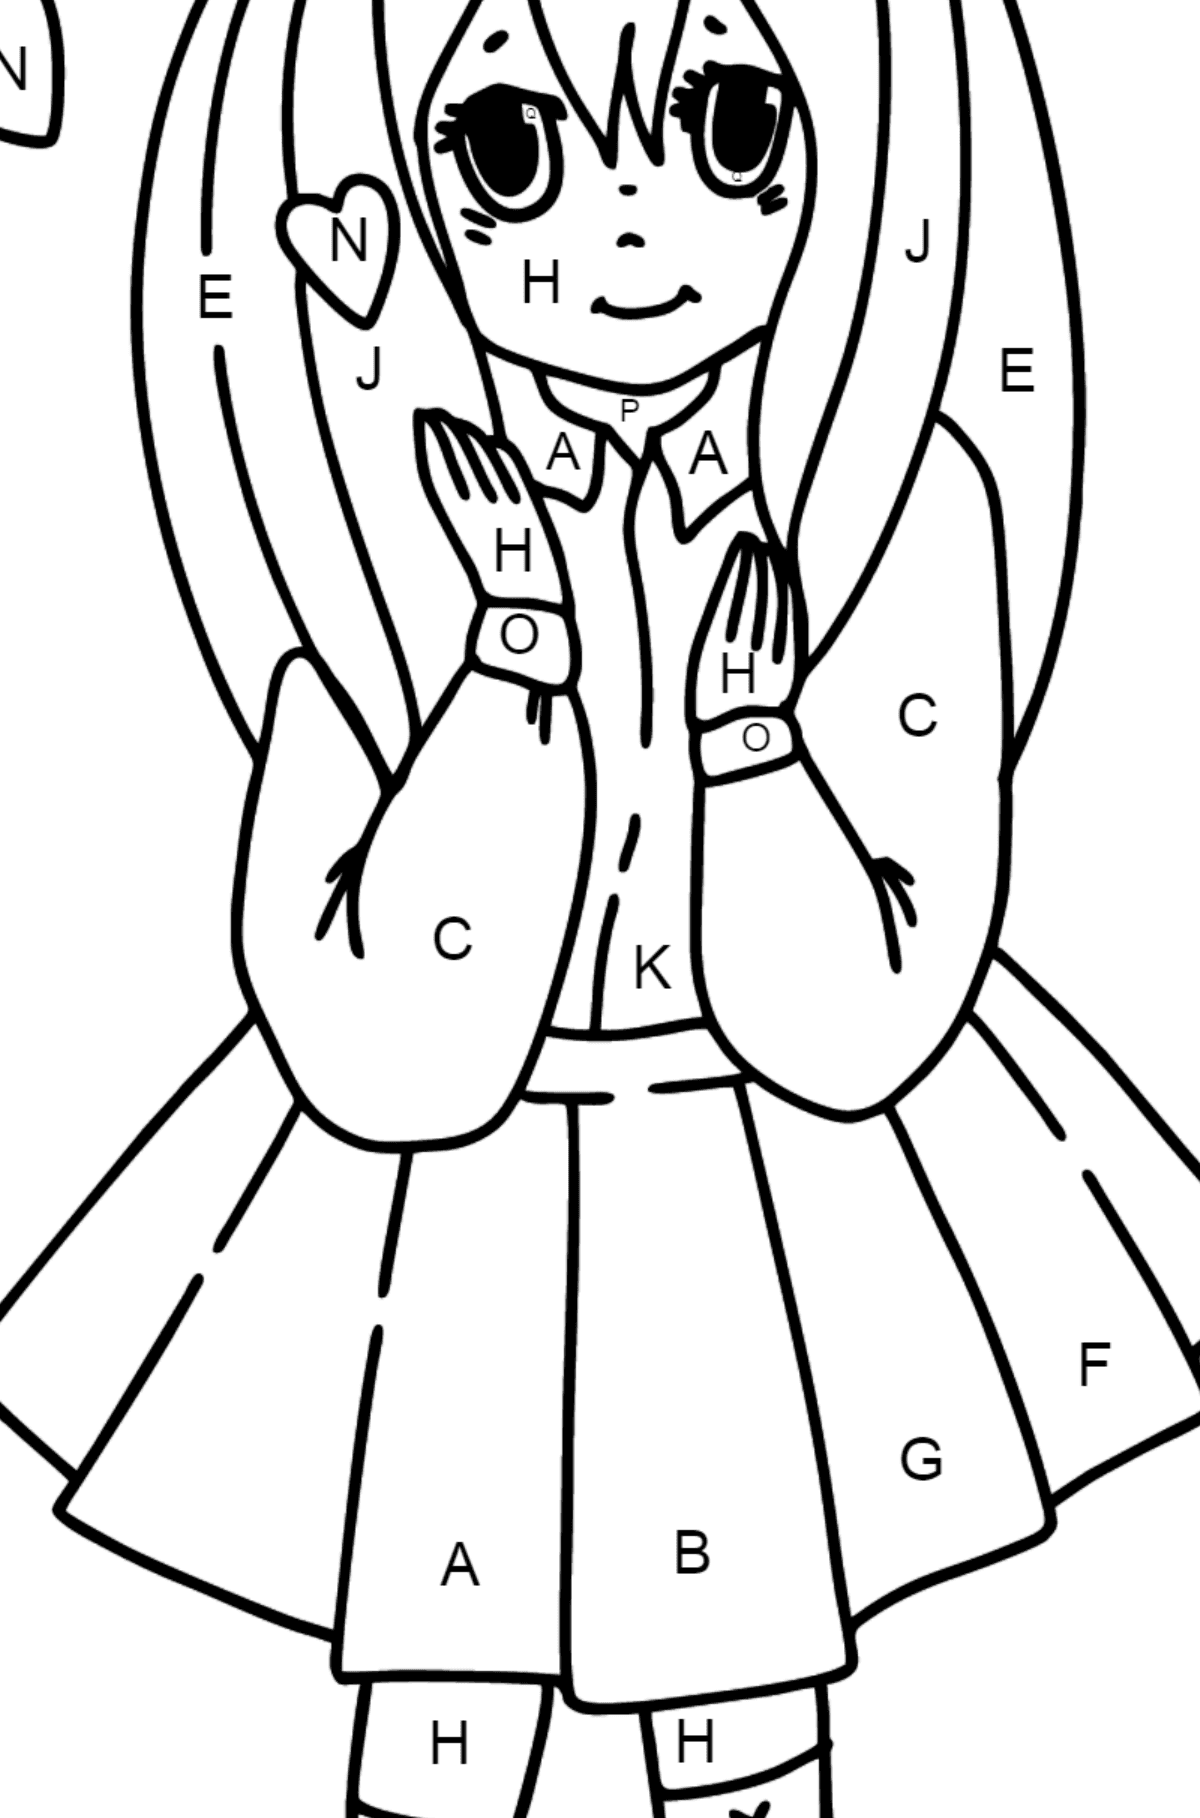 Anime girl in love coloring page - Coloring by Letters for Kids